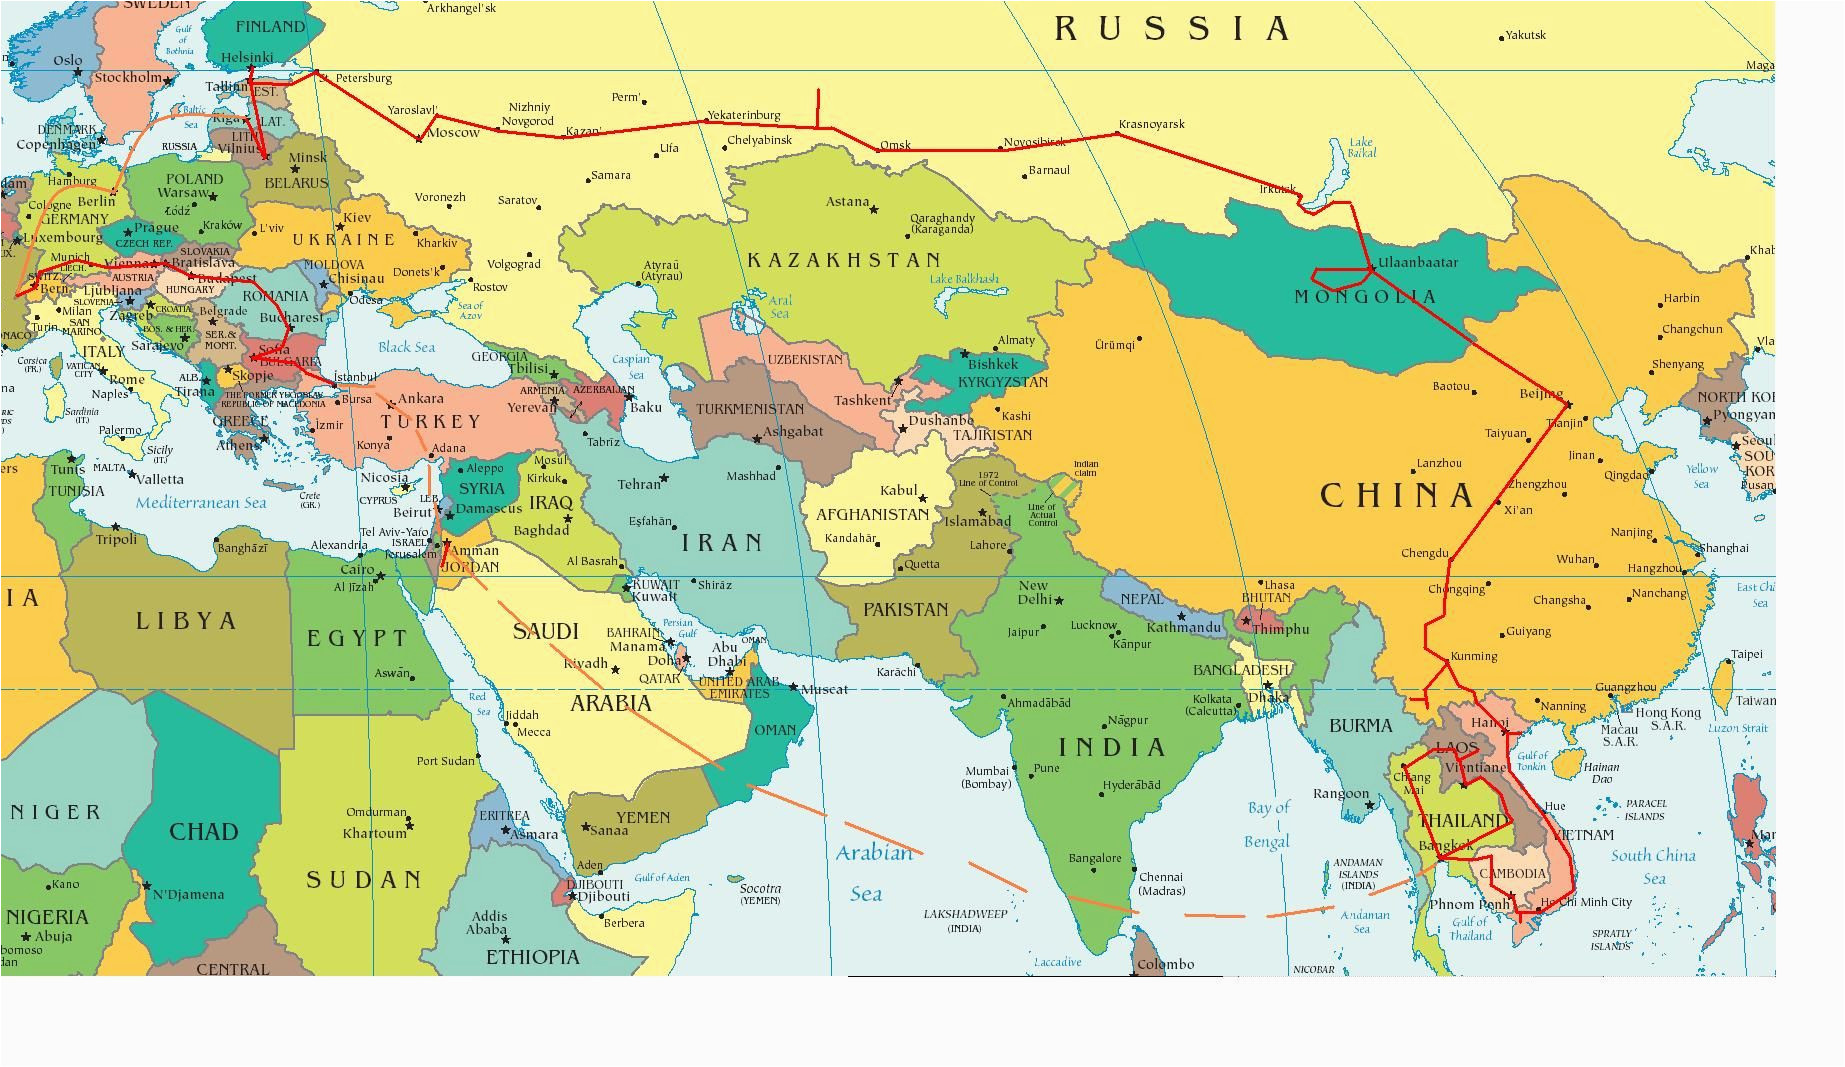 Map Of Eastern France Eastern Europe and Middle East Partial Europe Middle East asia